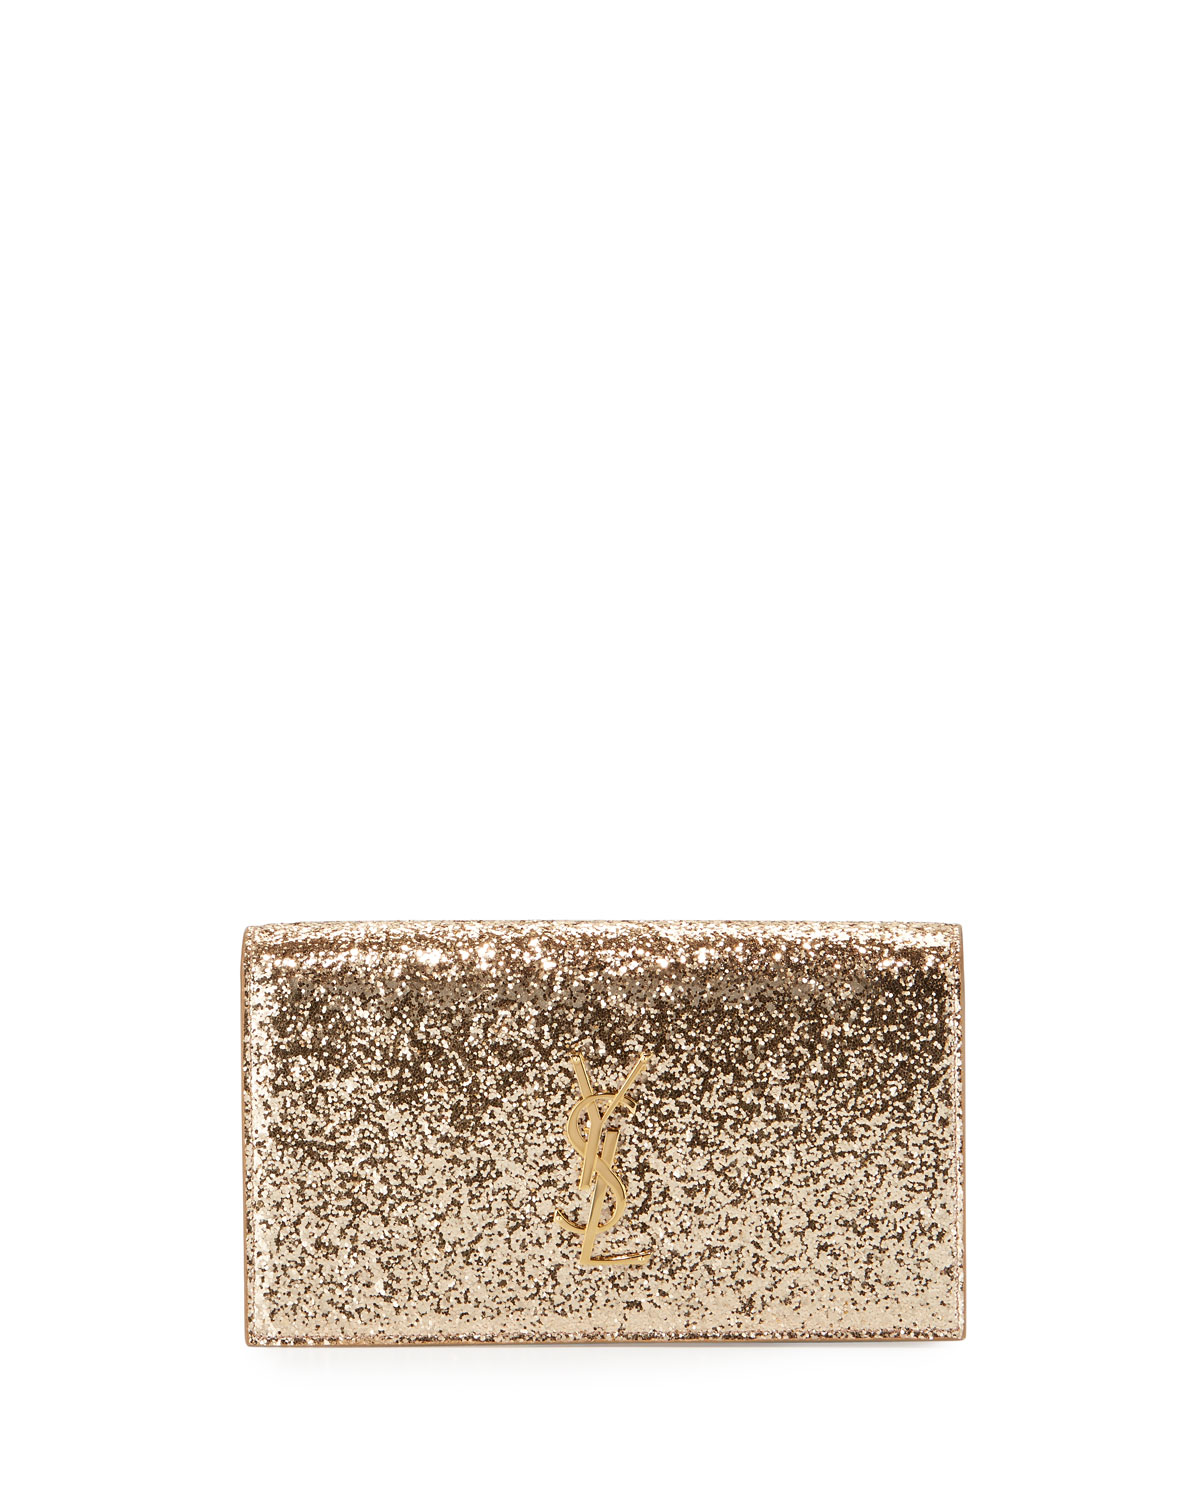 Saint Laurent Monogram Glitter Clutch Bag e5aa3aa36dfd